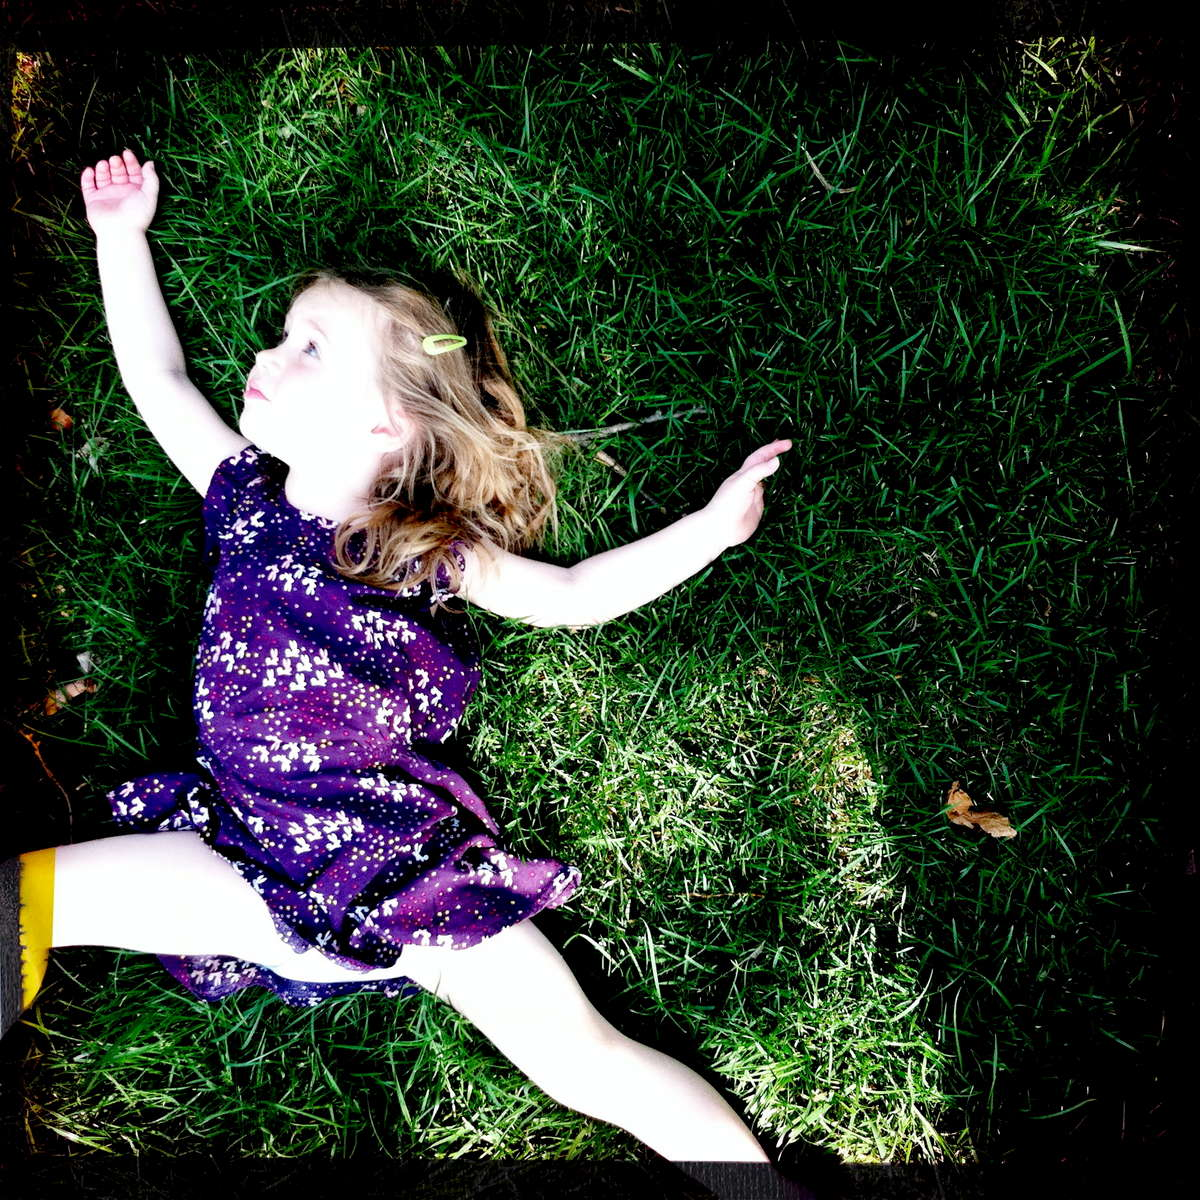 {quote}I'm flying, Mama.{quote} Rose laying on the grass on the way back from school. May 2015.